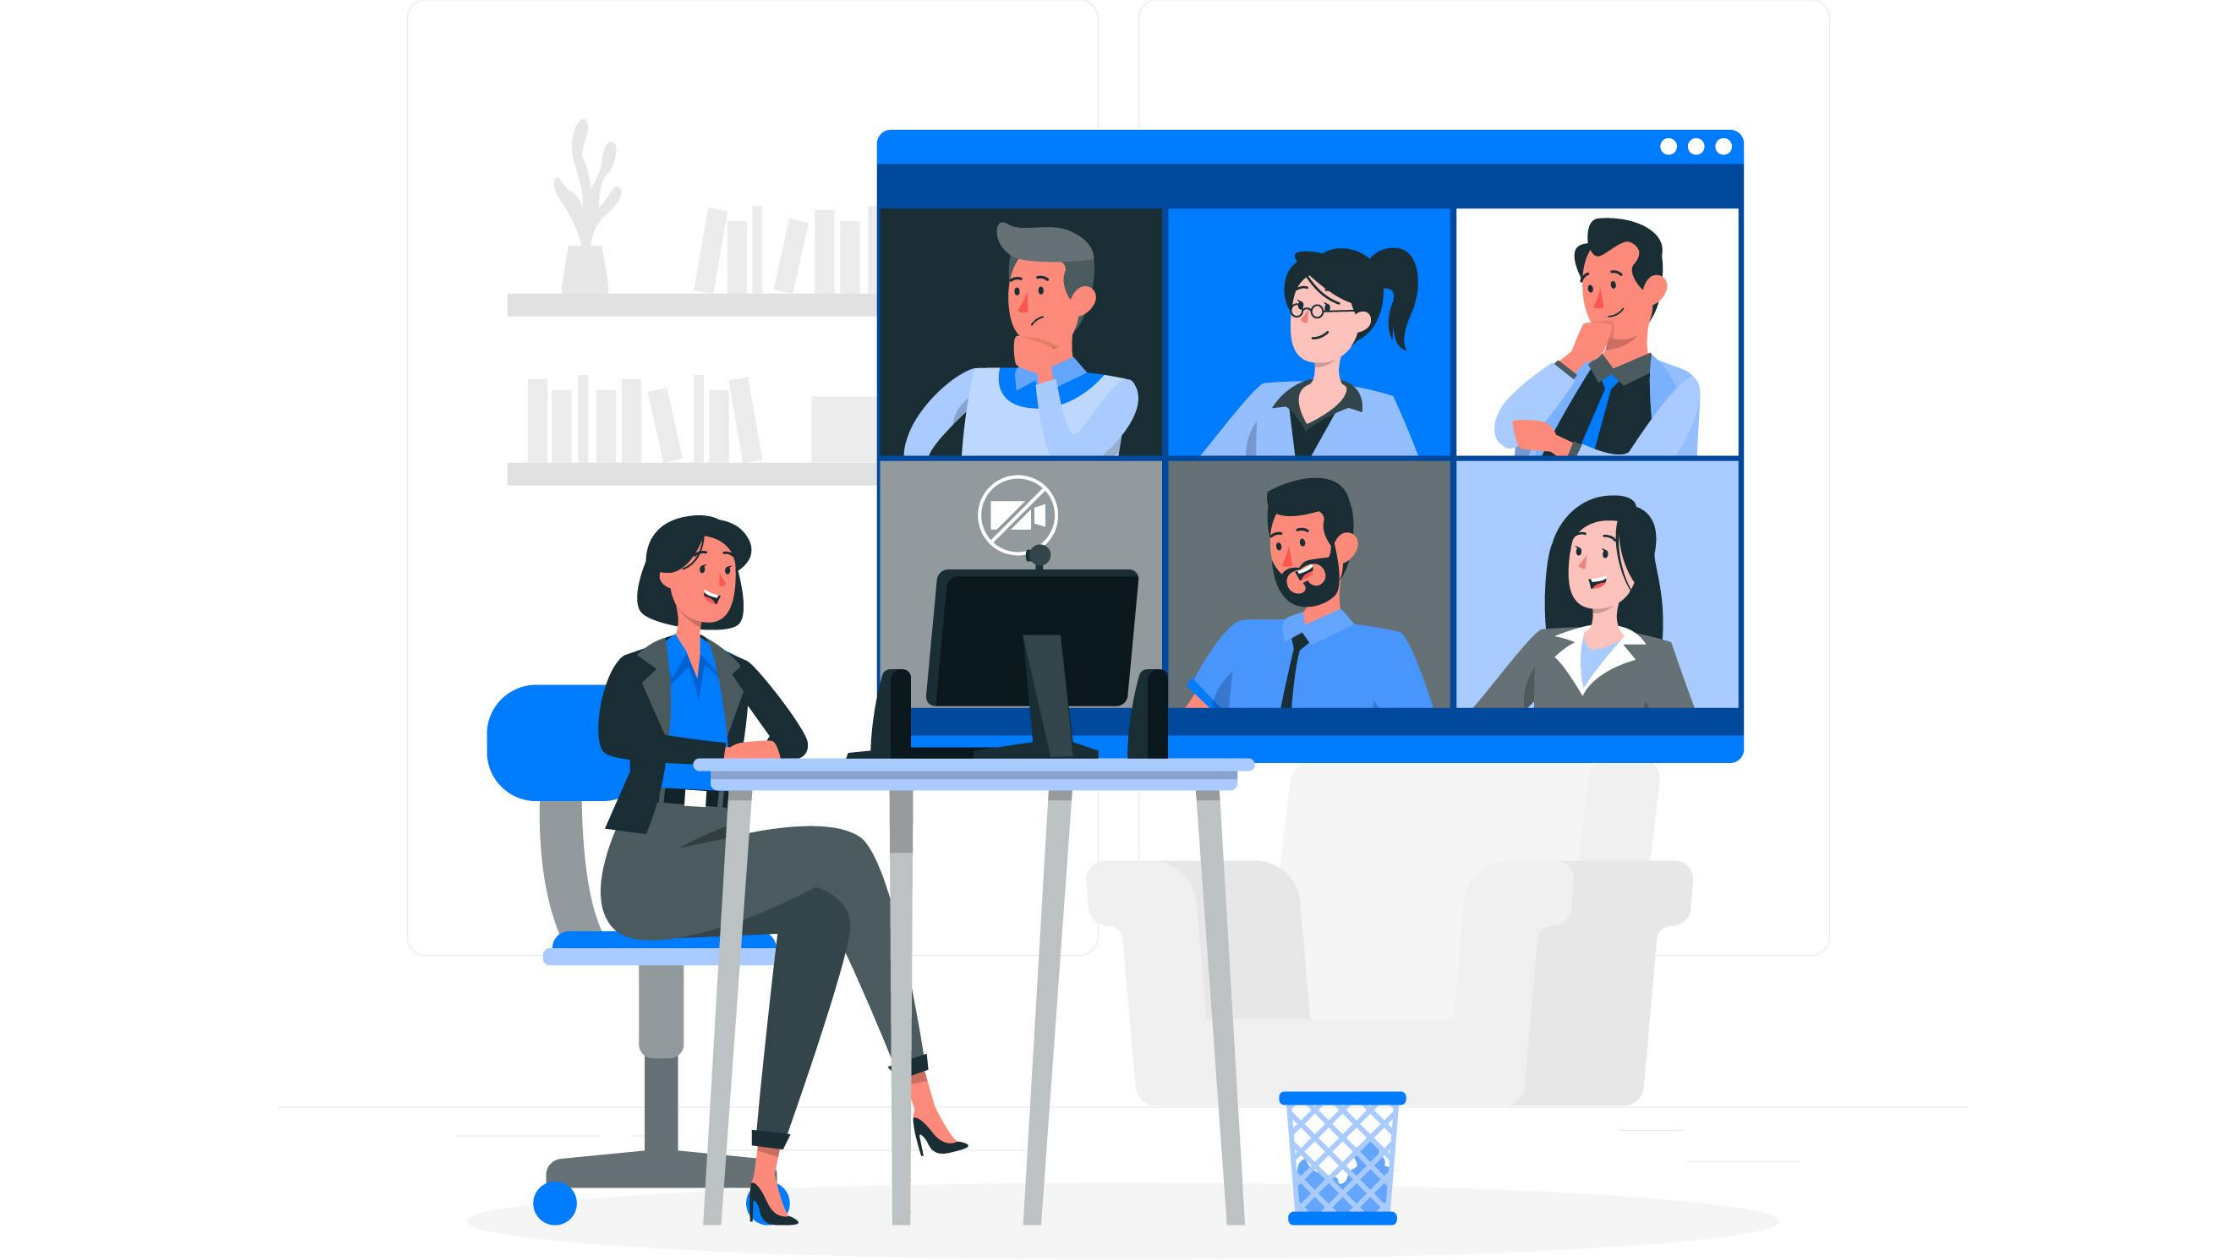 Set up an ideal process for the remote hiring team